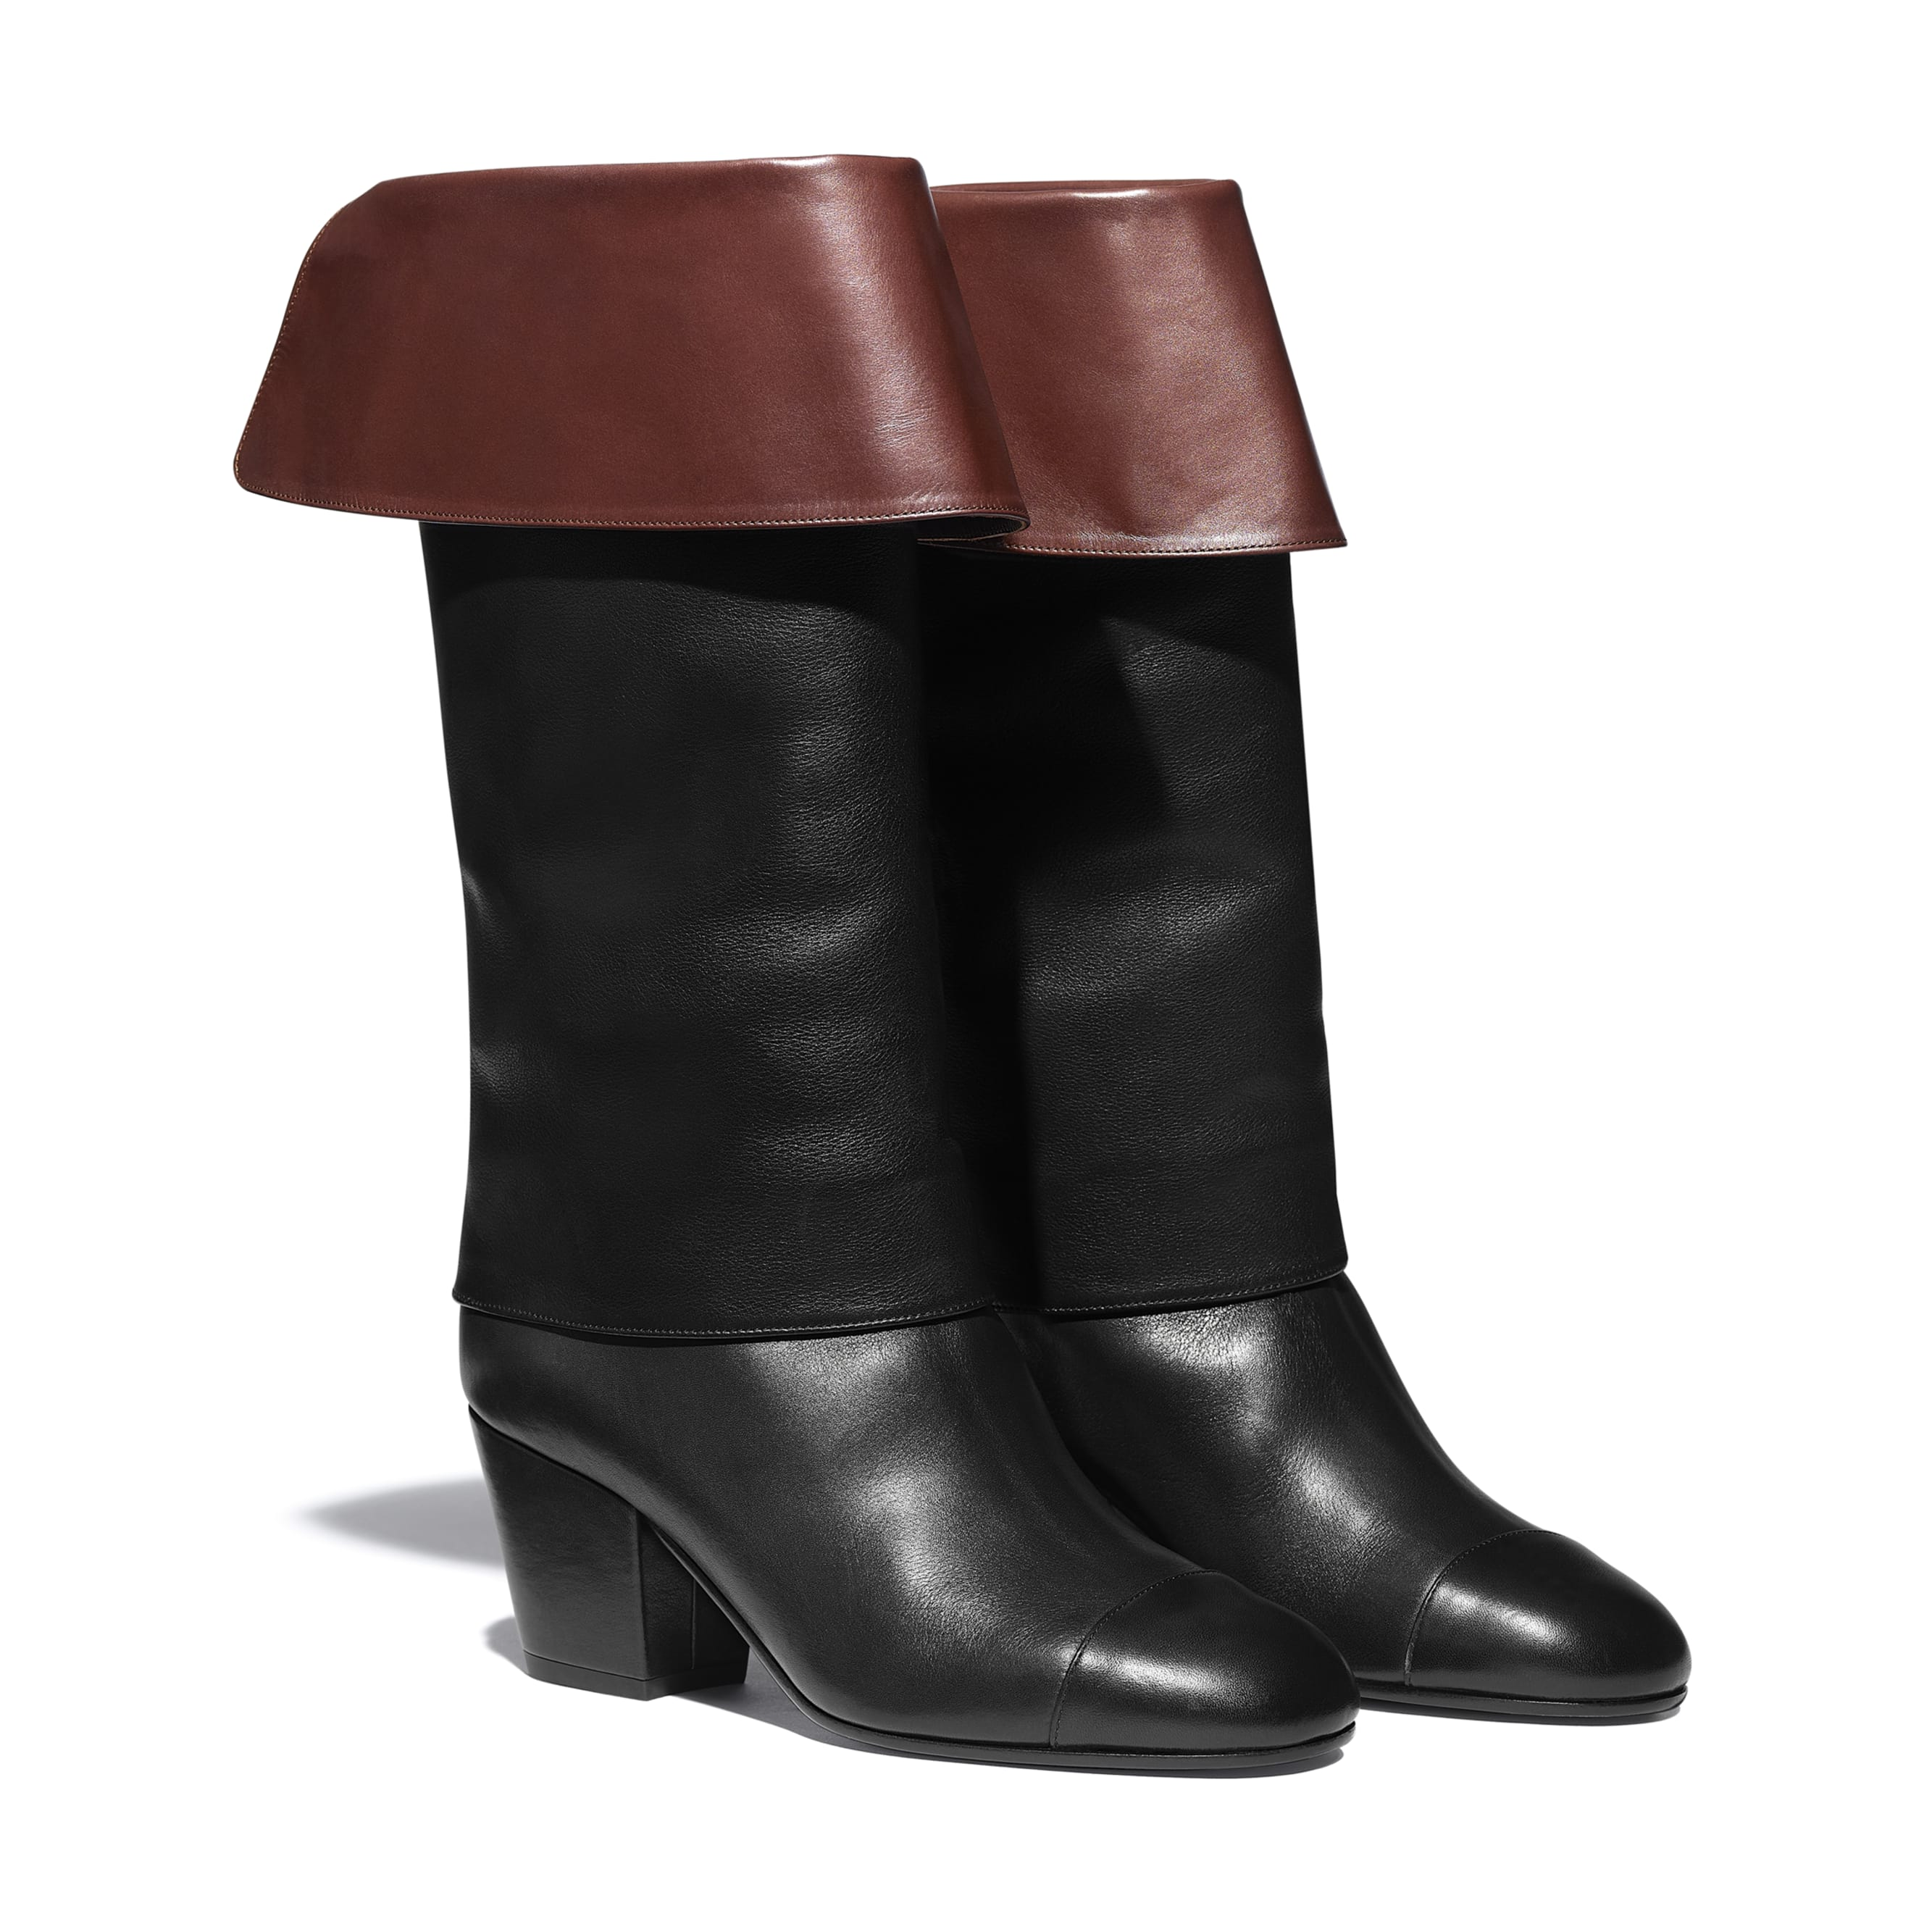 High Boots - Black & Brown - Calfskin - CHANEL - Alternative view - see standard sized version